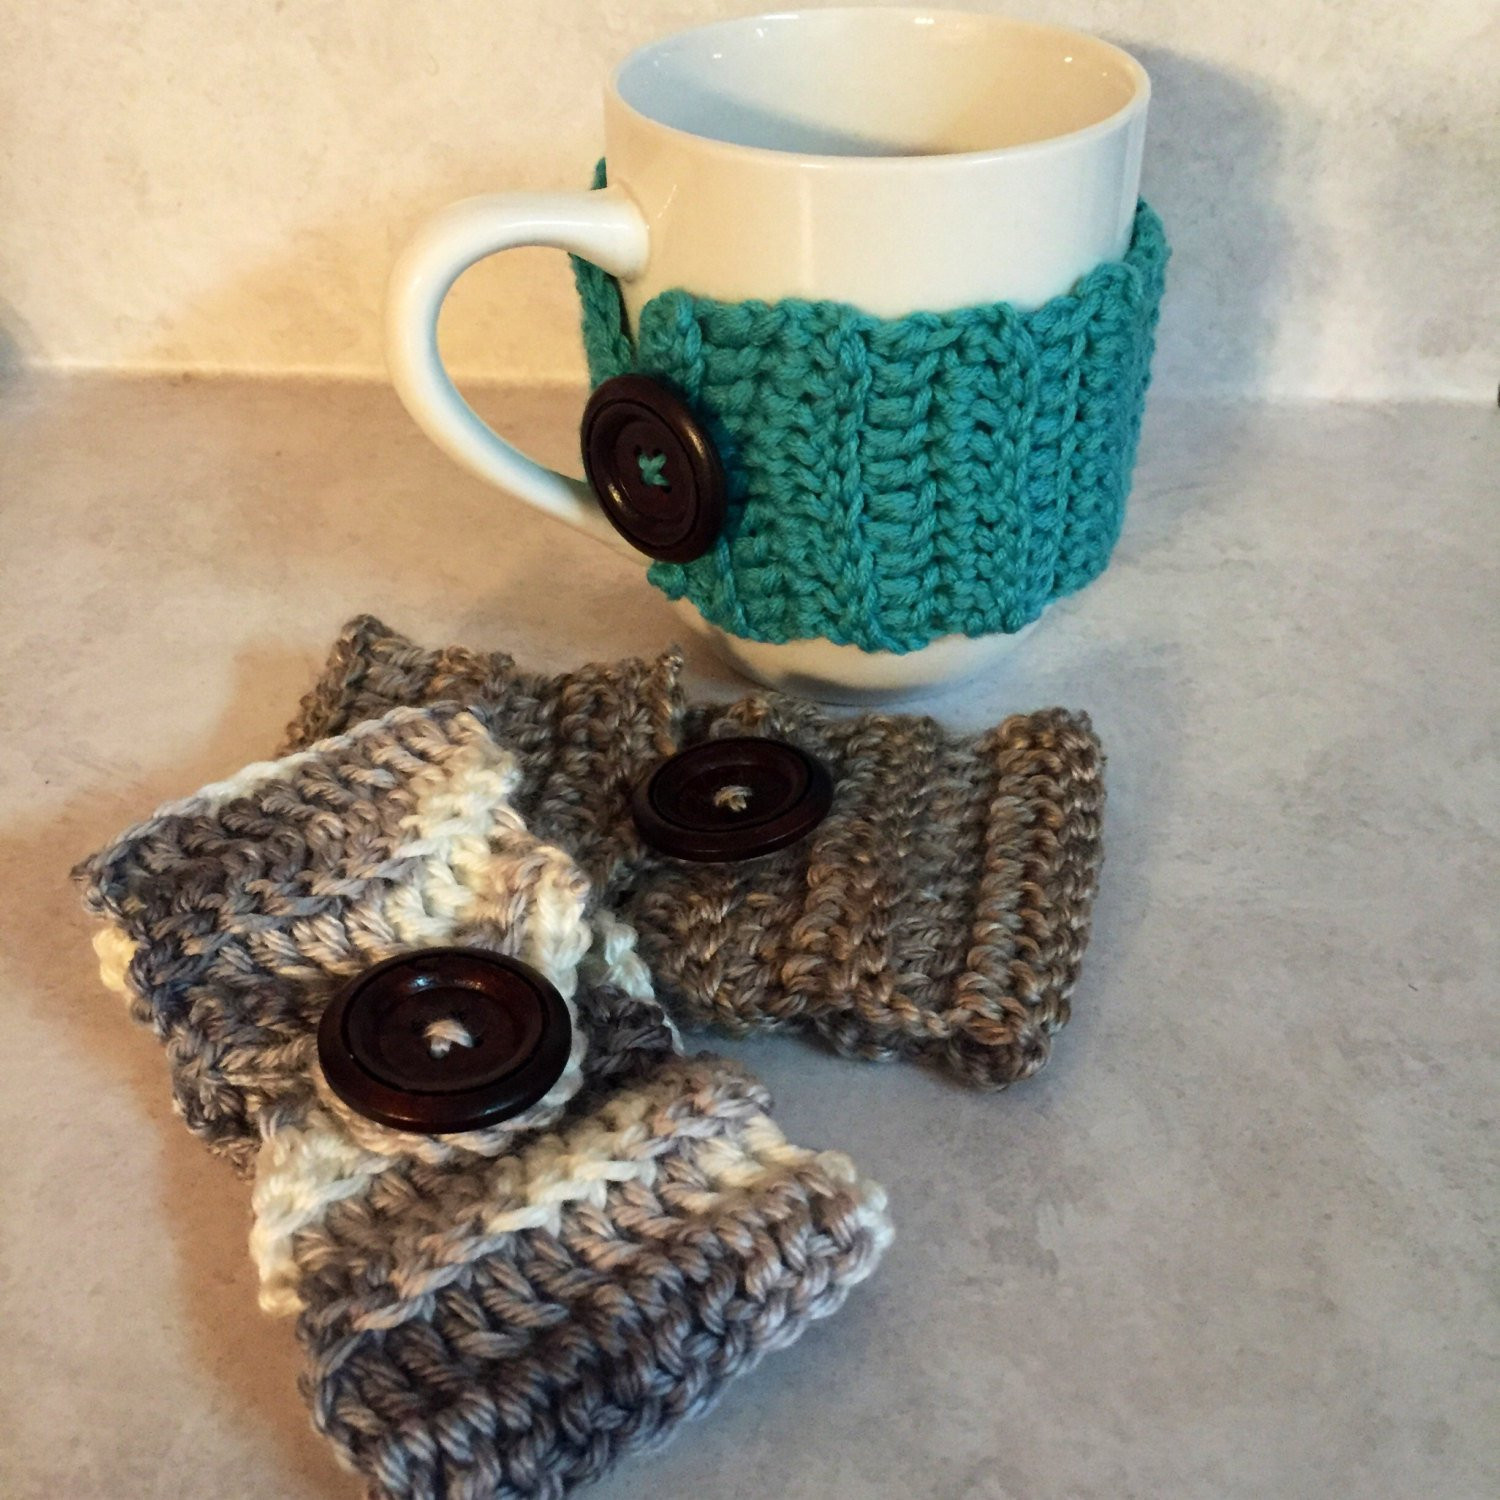 Crochet Coffee Cup Cozy New Crochet Tea Cozy Coffee Cup Sleeve Coffee Sleeve Mug Cozy Of Crochet Coffee Cup Cozy Awesome Free Mug Cozy Crochet Patterns with Worsted Weight Yarn